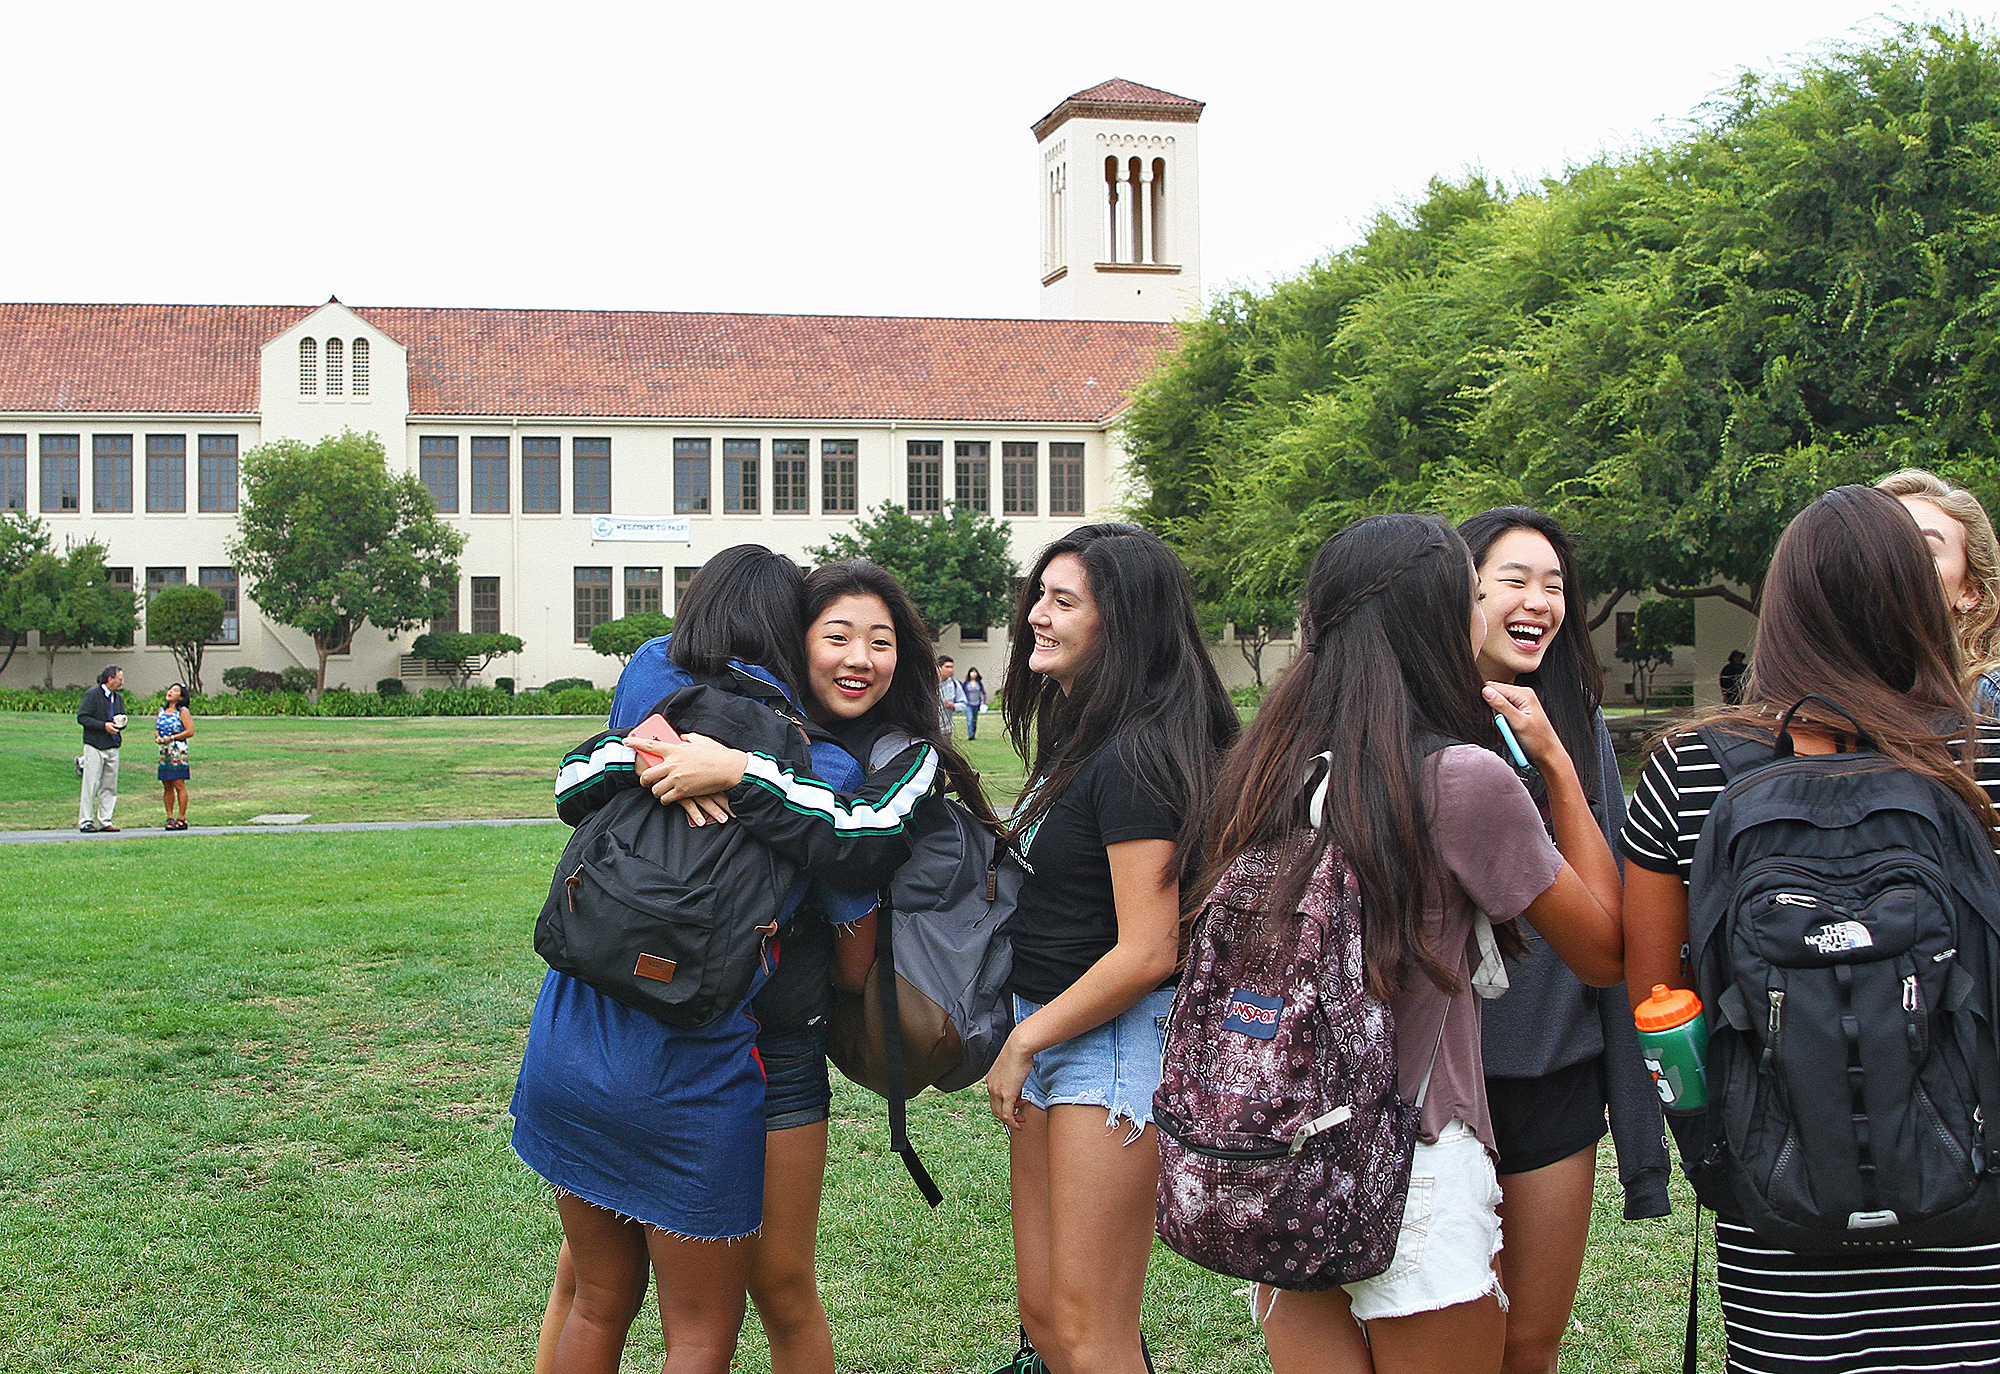 A group of girls hug and catch up with each other before classes begin on the first day of school at Palo Alto High School in 2016. Photo by Veronica Weber.